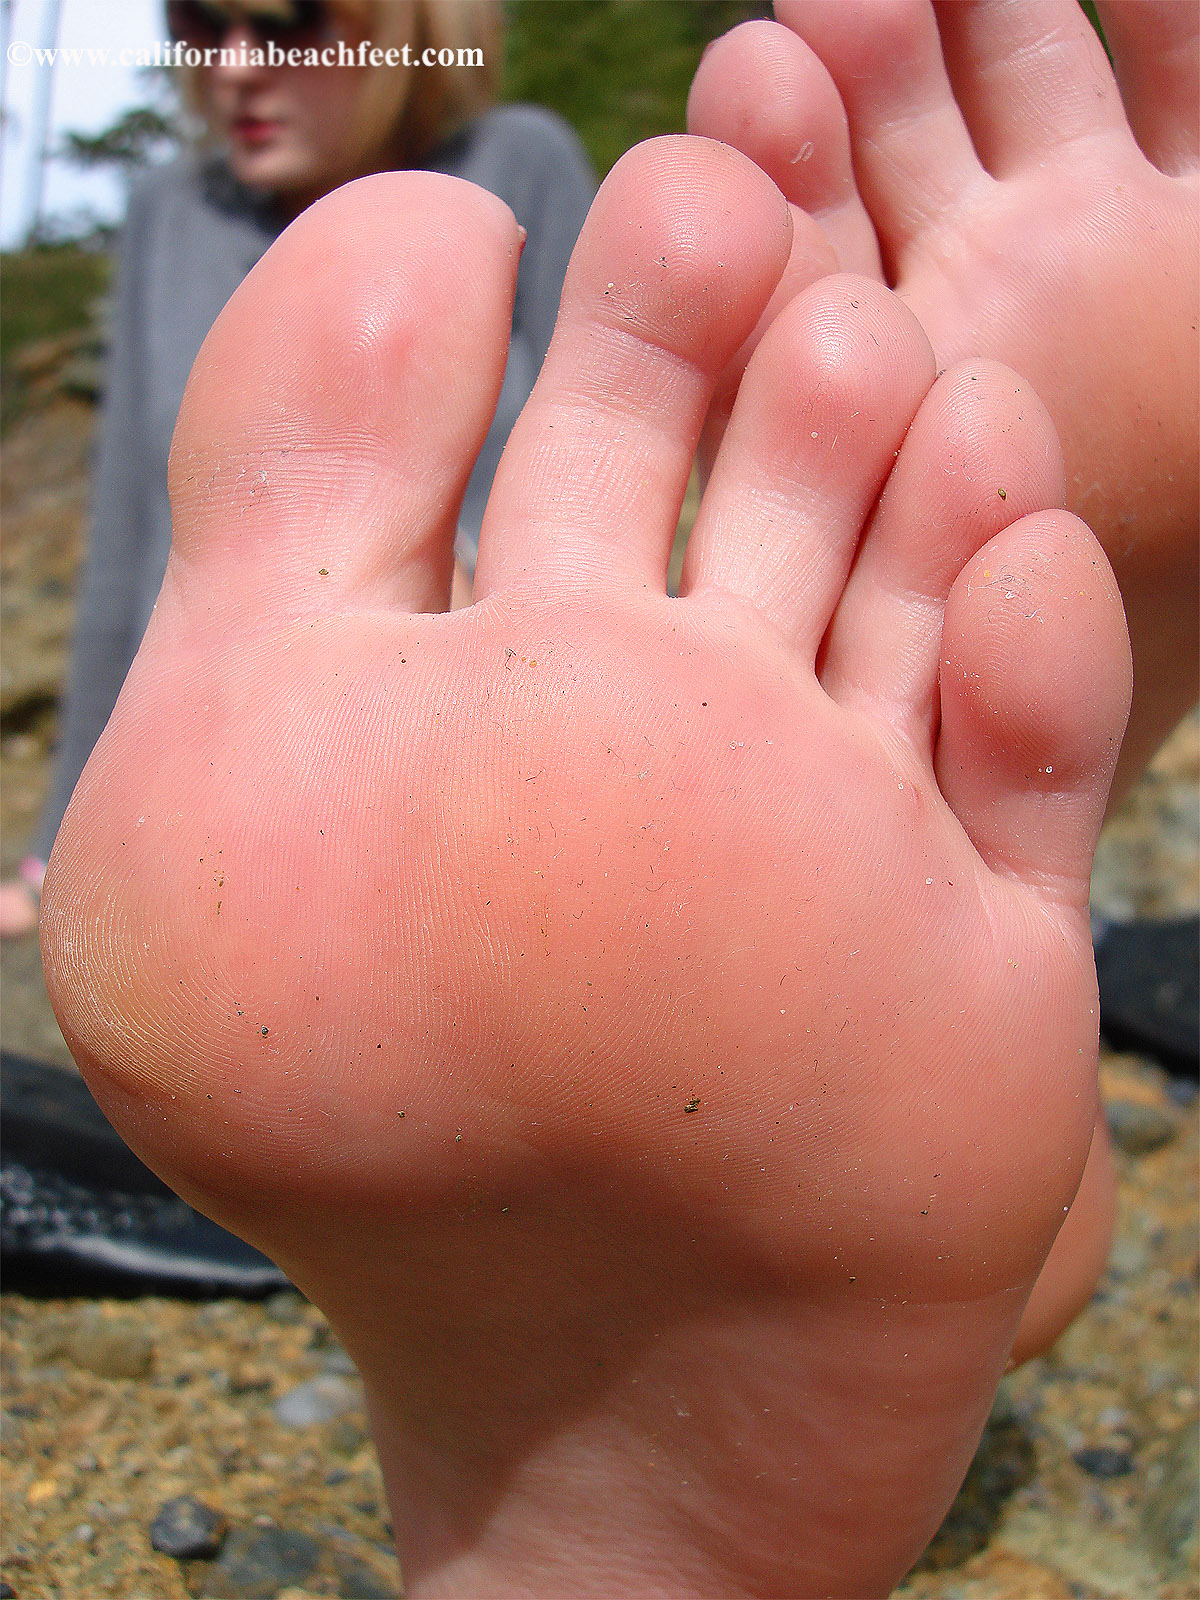 hello sole shots from lovely ladies sent to the night hawk soles